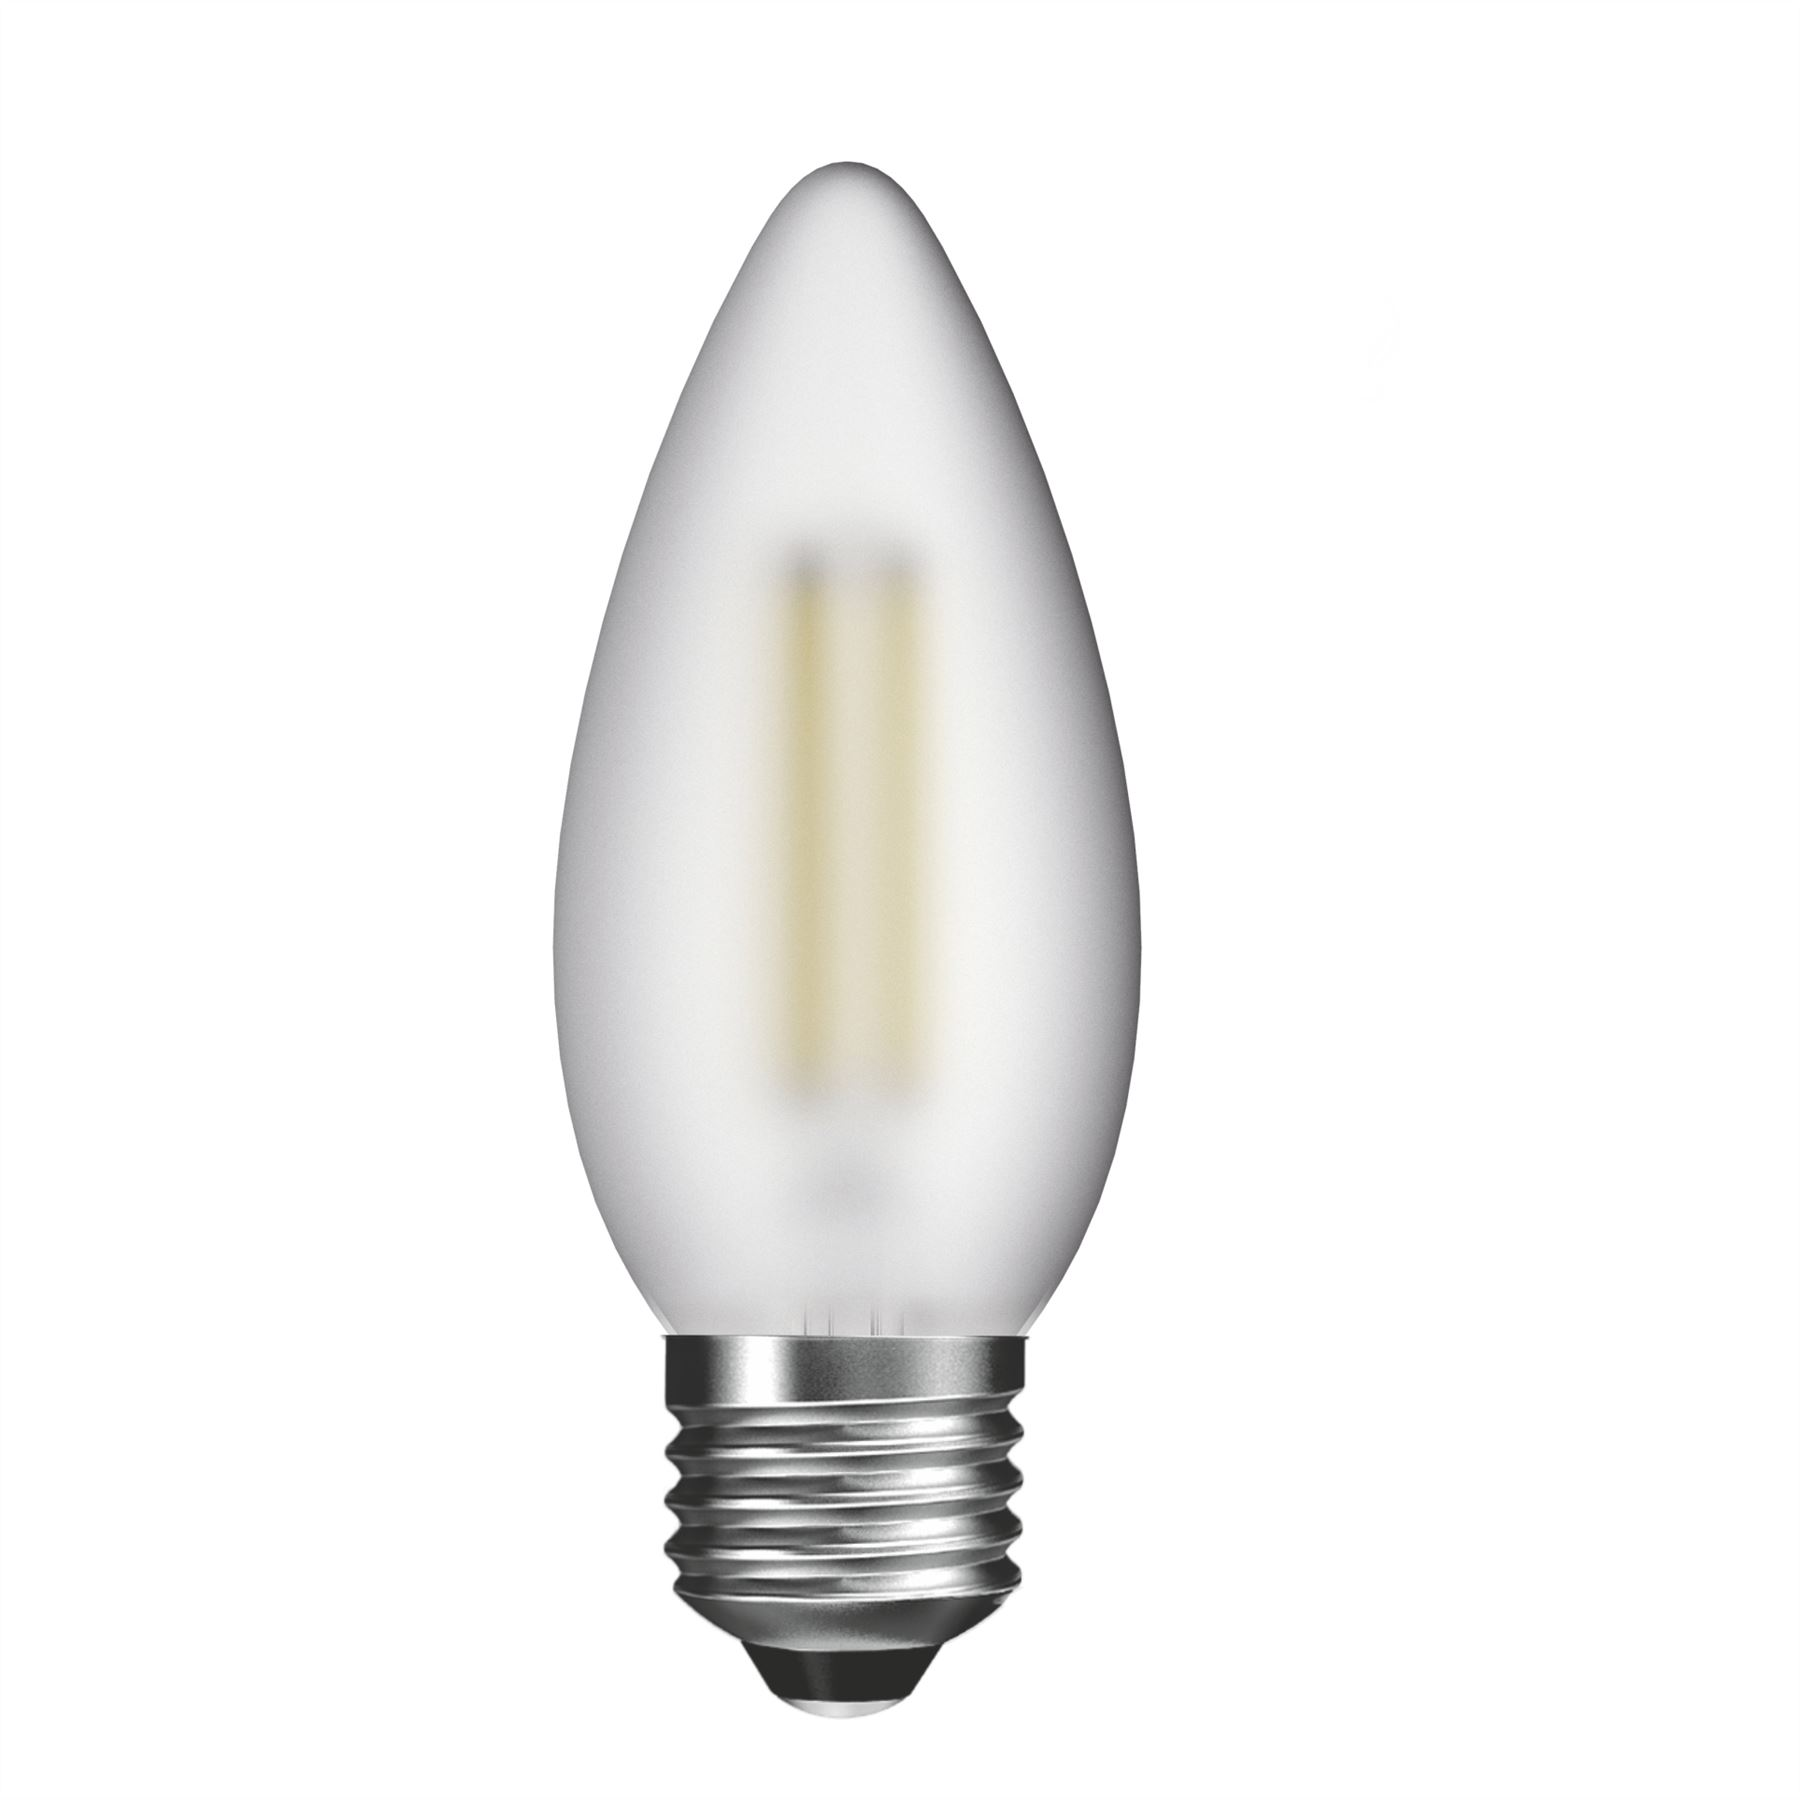 Modern LED Candle Design LED Bulb Warm White With Frosted Finish Home Lighting